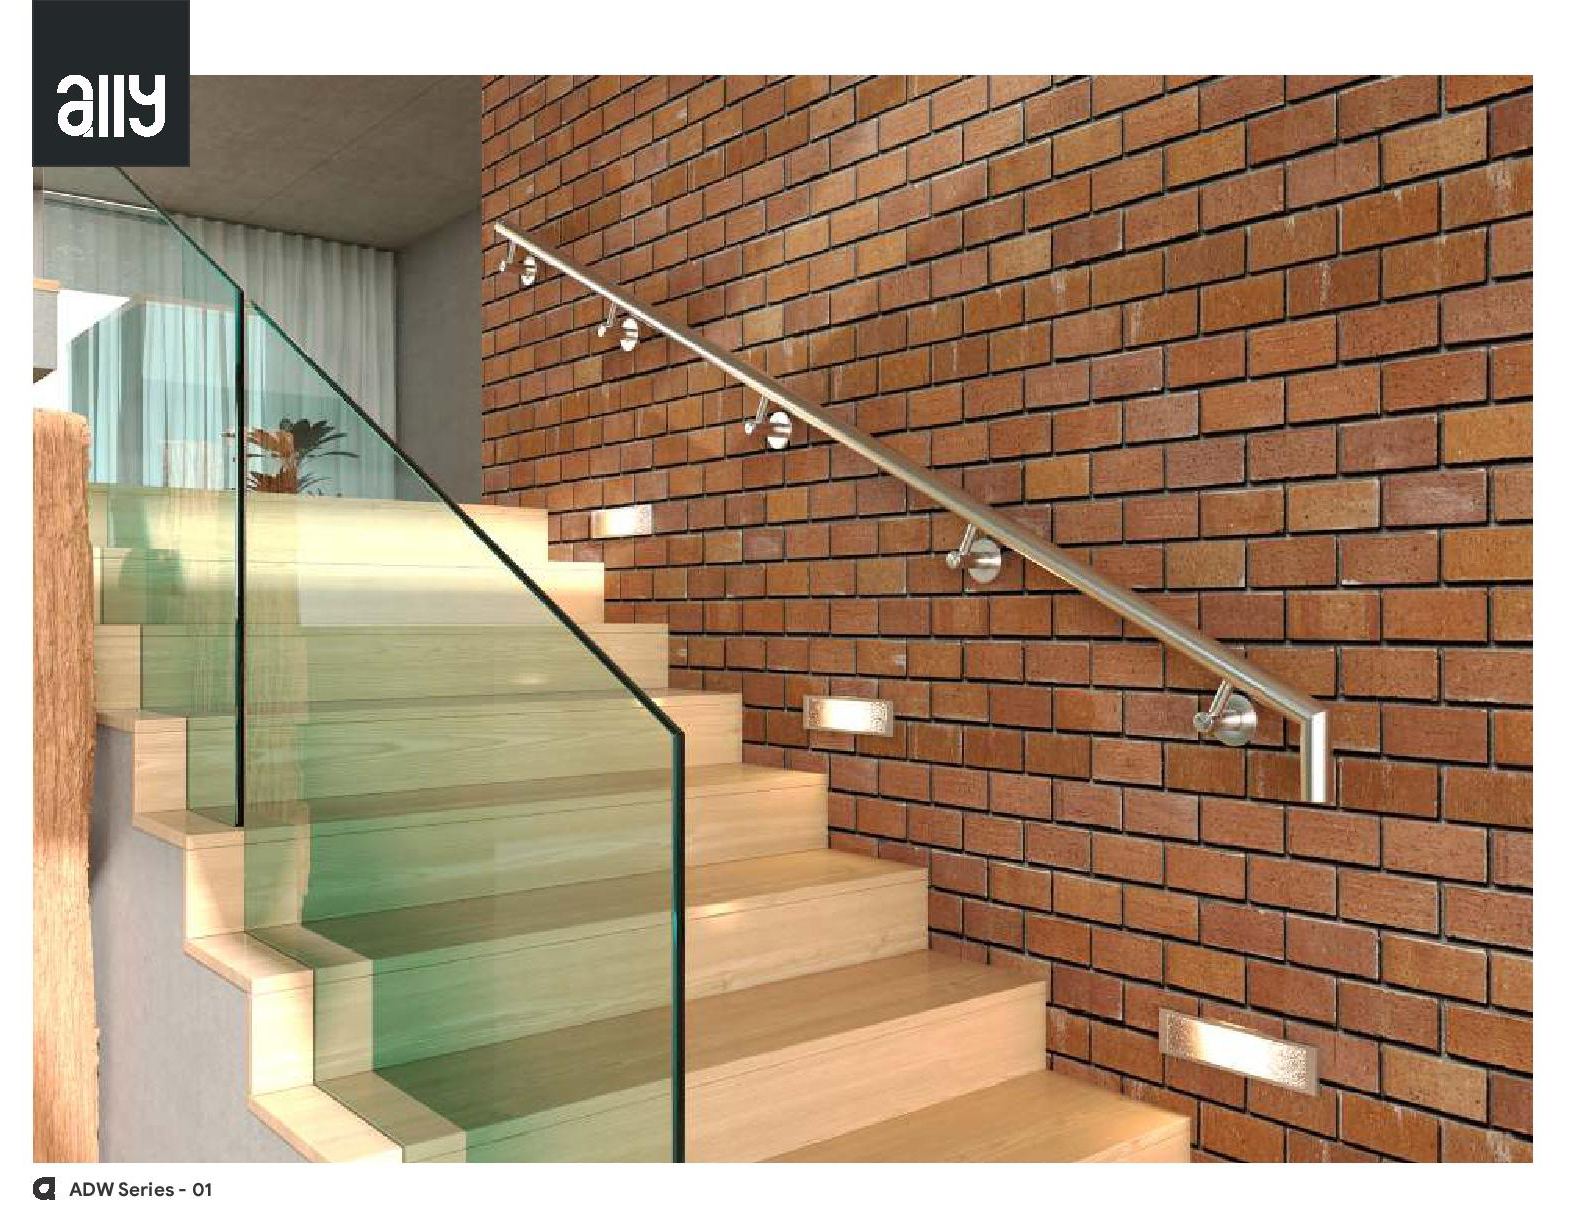 ADW (Wall mounted Railing System)